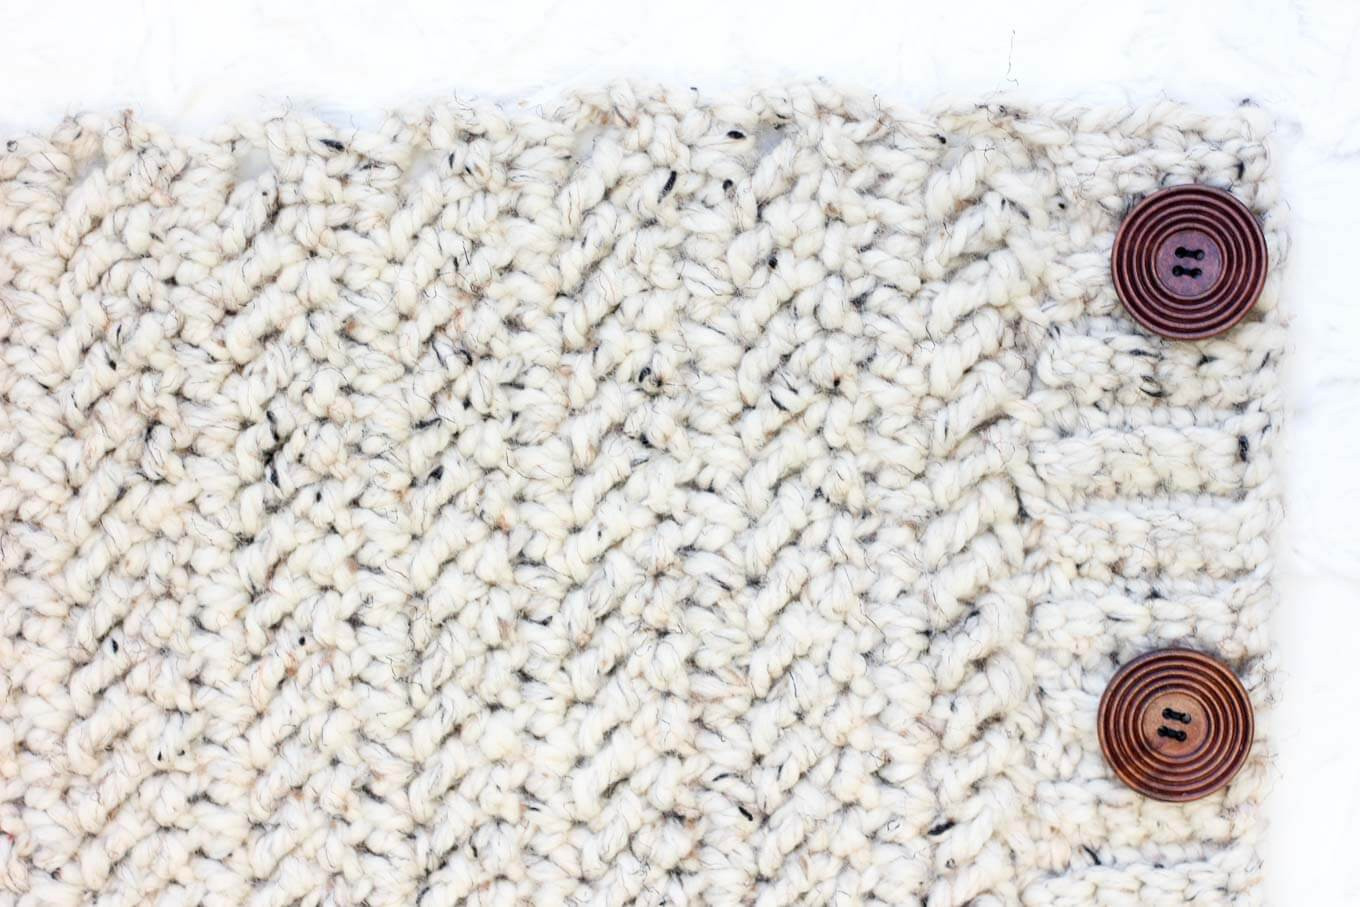 Crochet Stitches Inspirational 25 Crochet Stitches for Blankets and Afghans Make & Do Crew Of Great 46 Pics Crochet Stitches